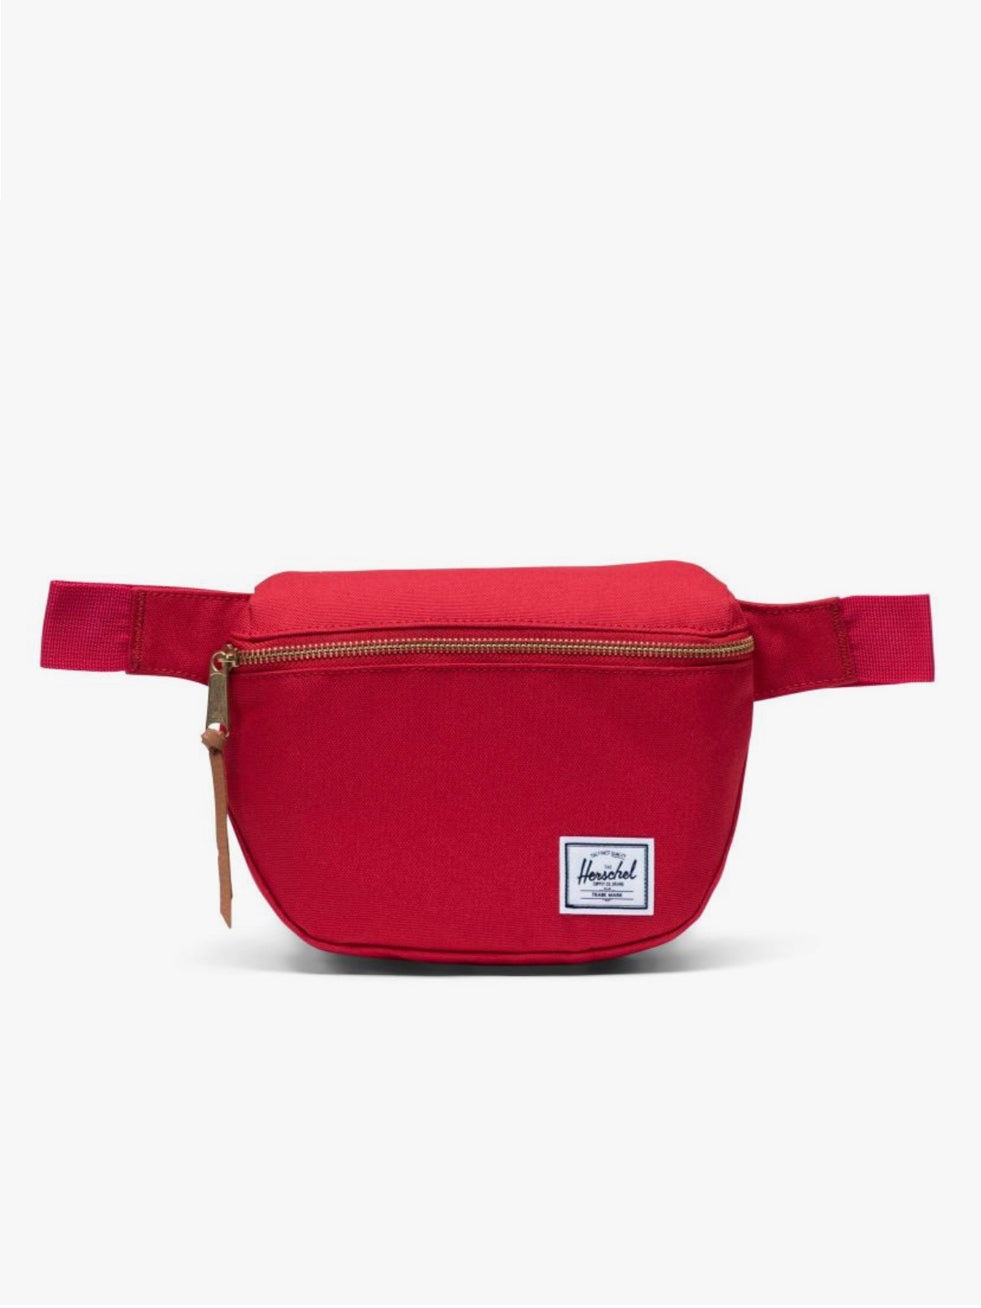 Fifteen Hip Bag (Assorted Colors)